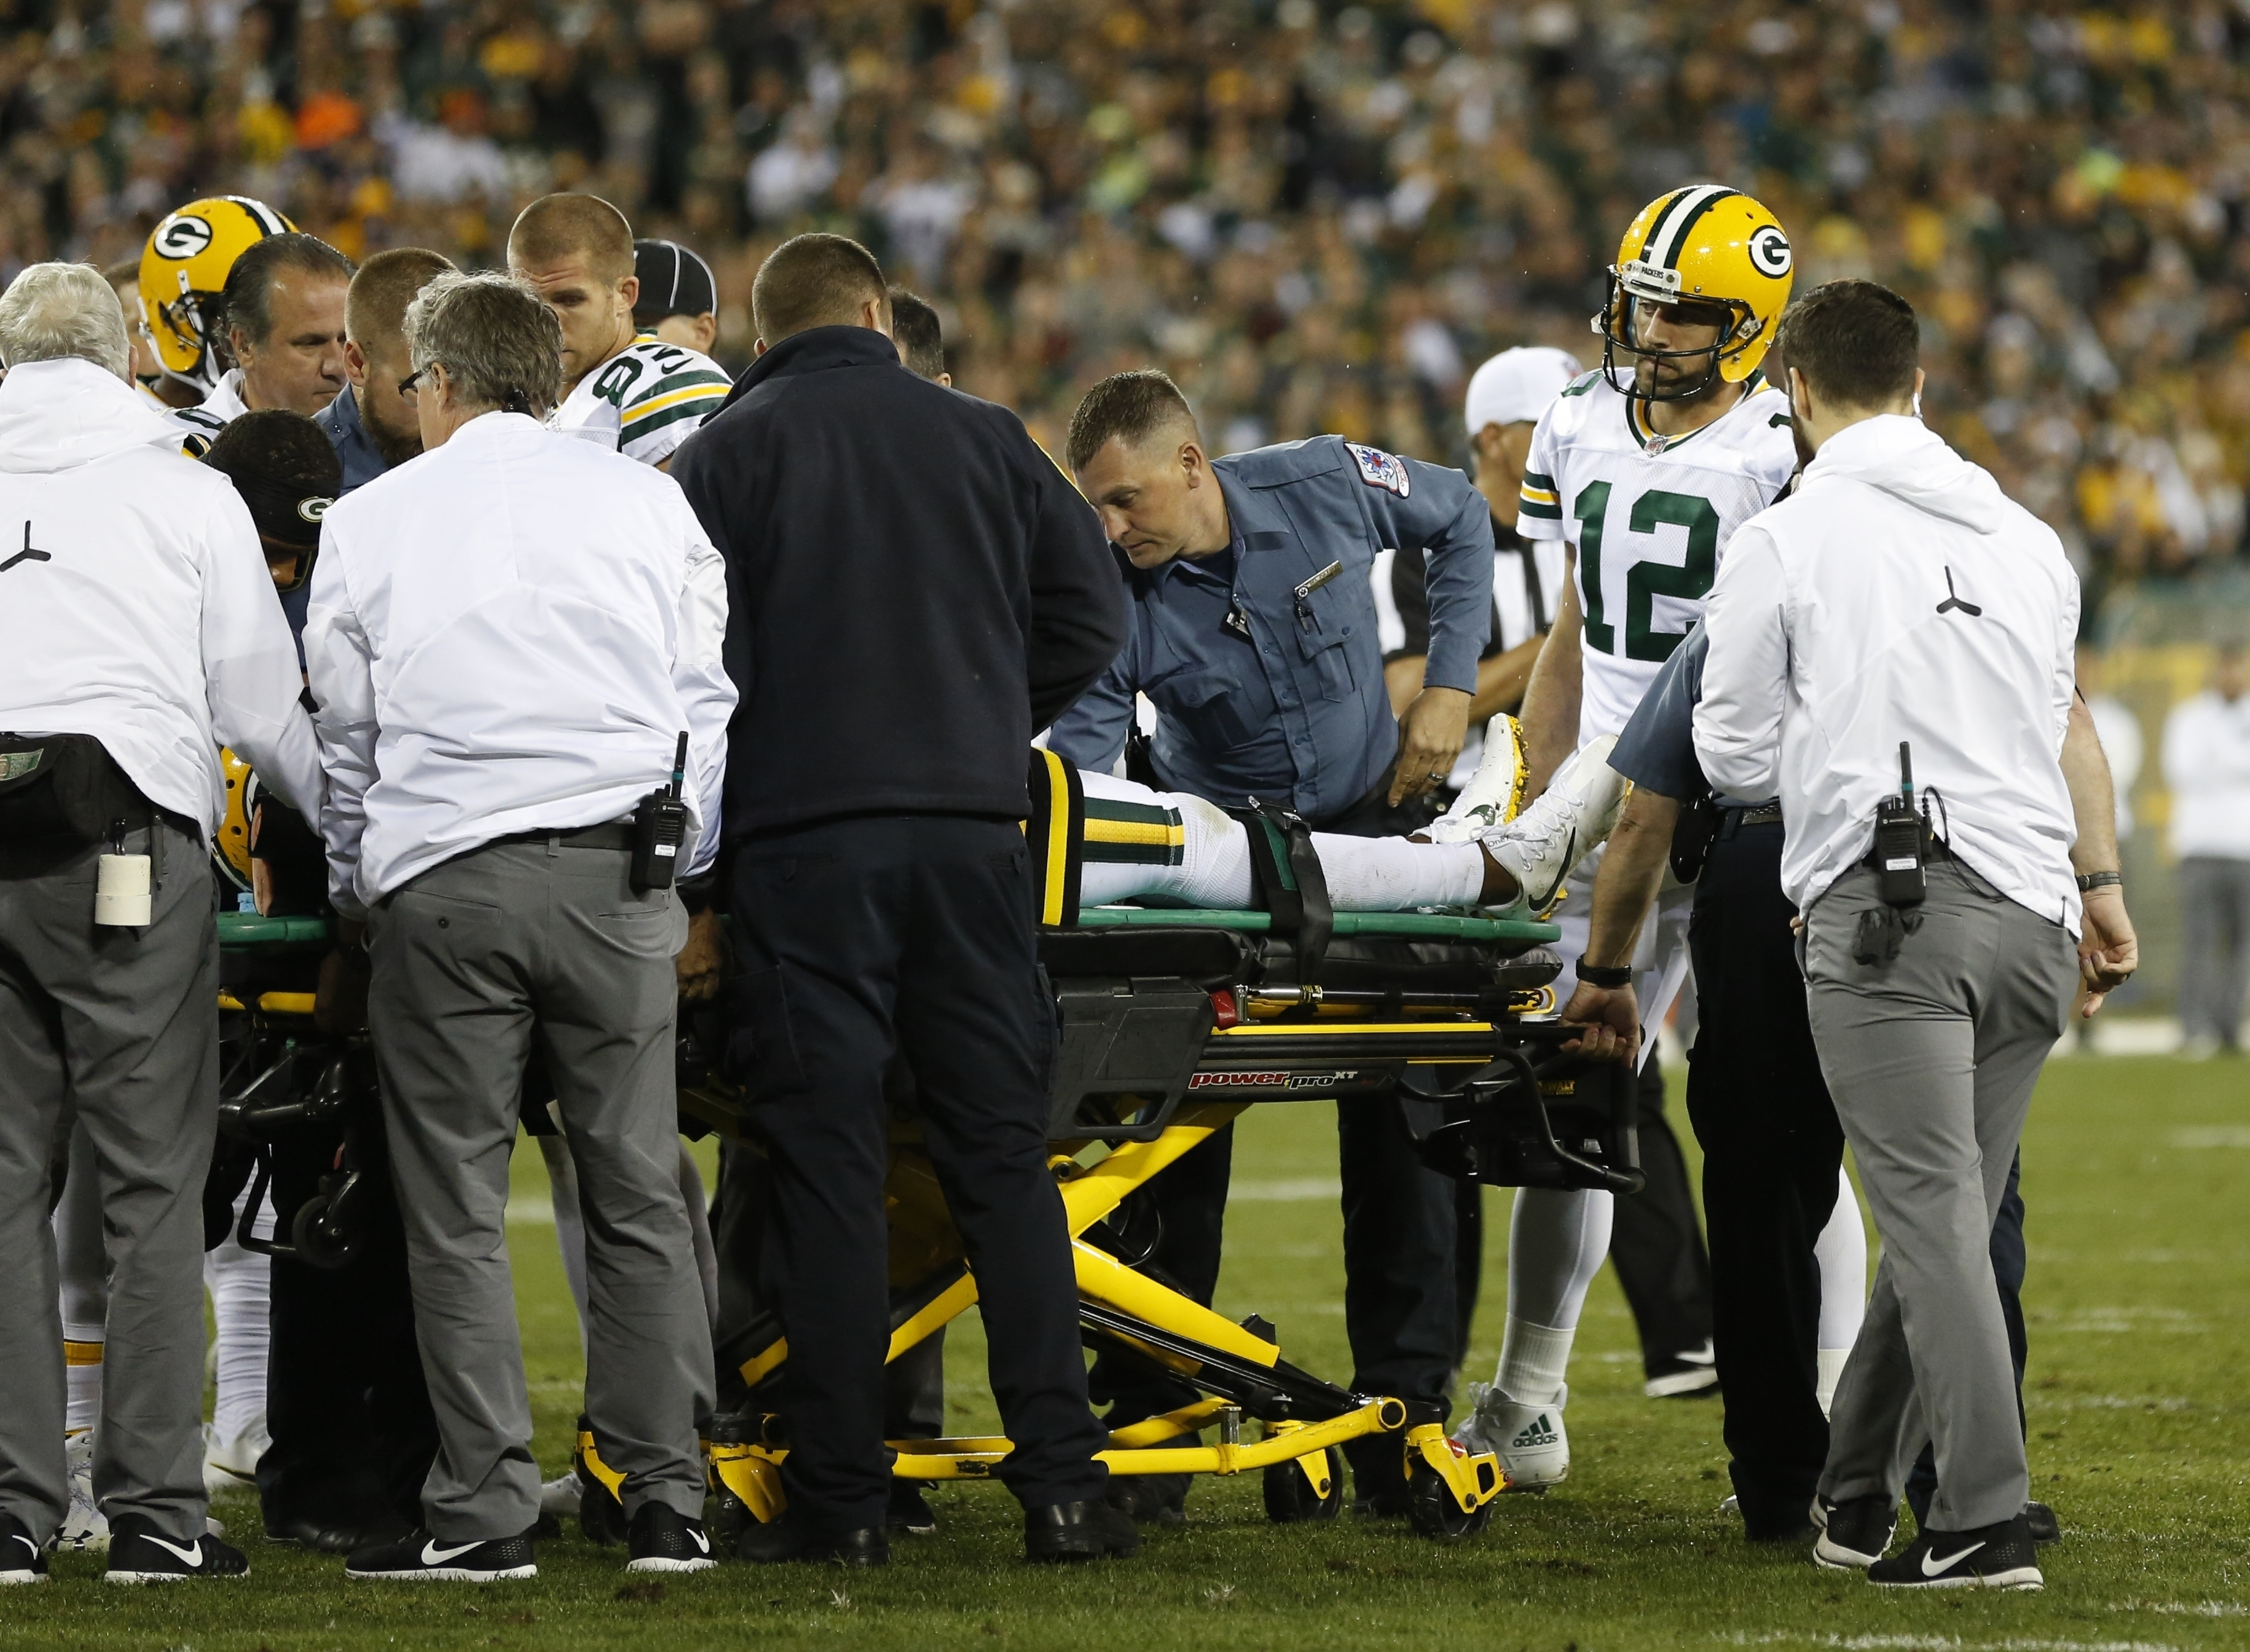 Green Bay Packers' Aaron Rodgers watches as teammate Davante Adams is taken off the field after being hit in the head during the second half of an NFL football game against the Chicago Bears Thursday, Sept. 28, 2017, in Green Bay, Wis. (AP Photo/Matt Ludtke)